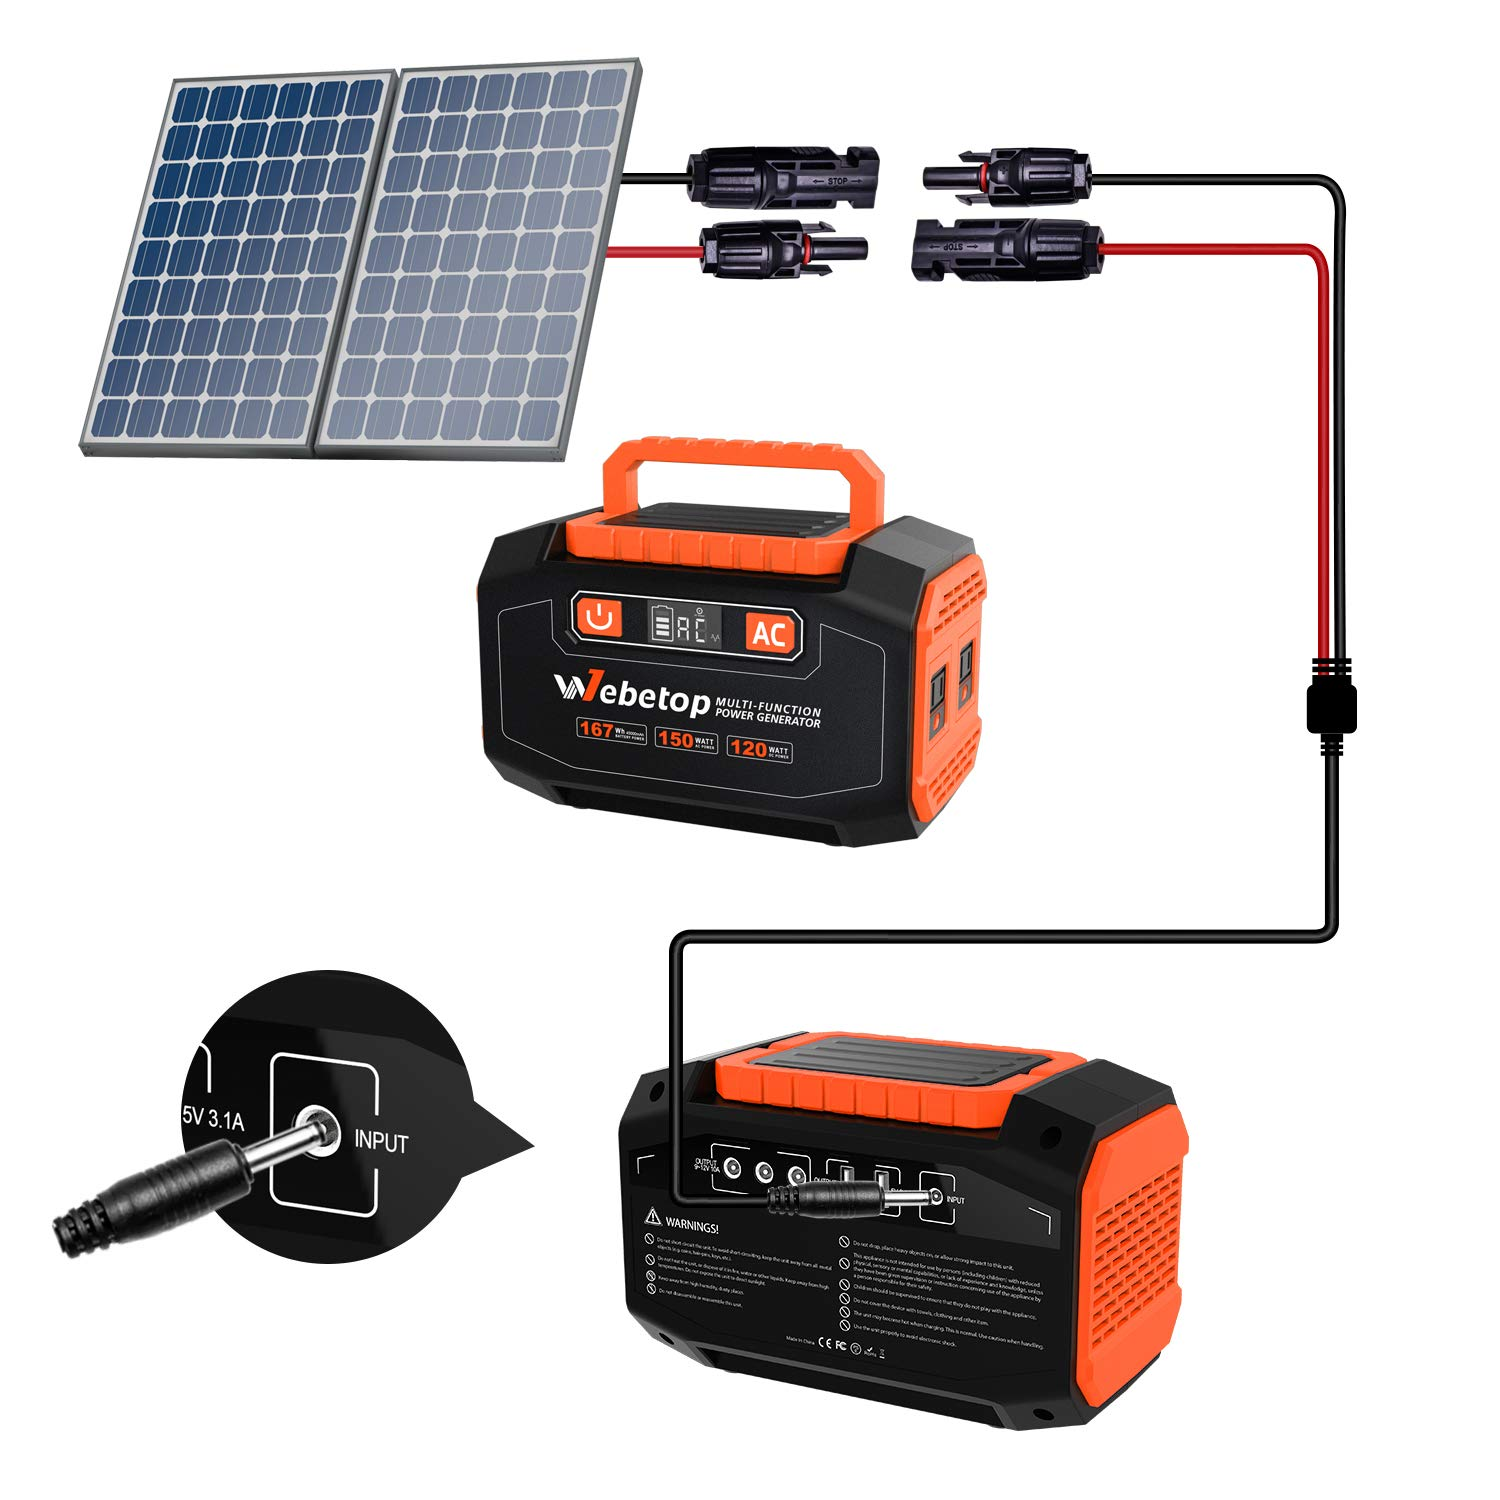 Webetop Mc4 Connector Cables Solar Panel Adapter To Dc 3 5 X 1 35mm All Power Solar Panel Recharged Portable Solar Generator Inverter Automotive Tools Equipment